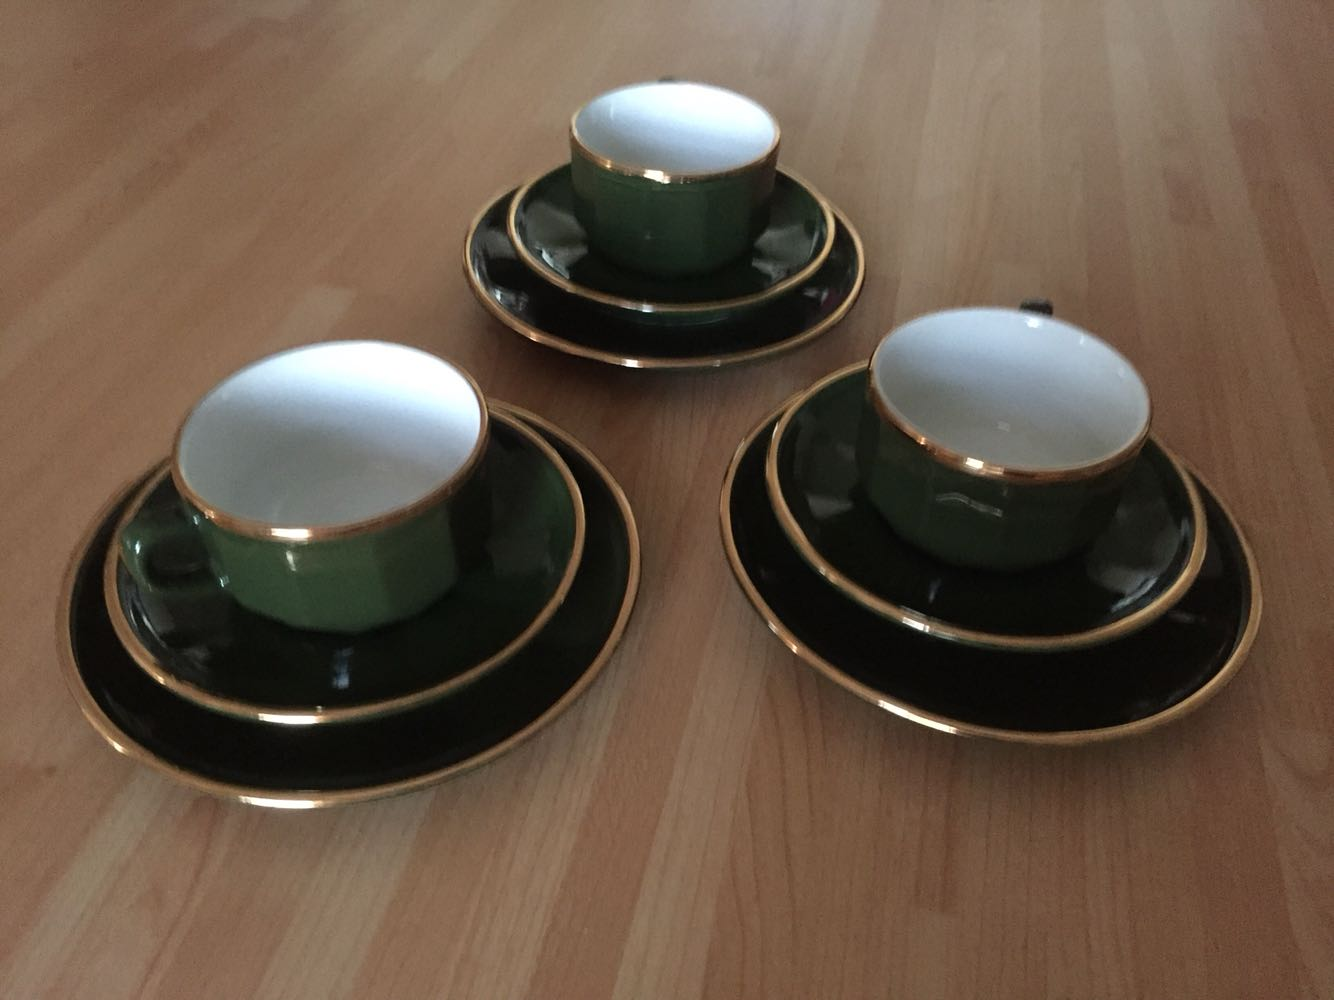 Vintage Porcelain Apilco France Cup Saucers For Sale In Chester